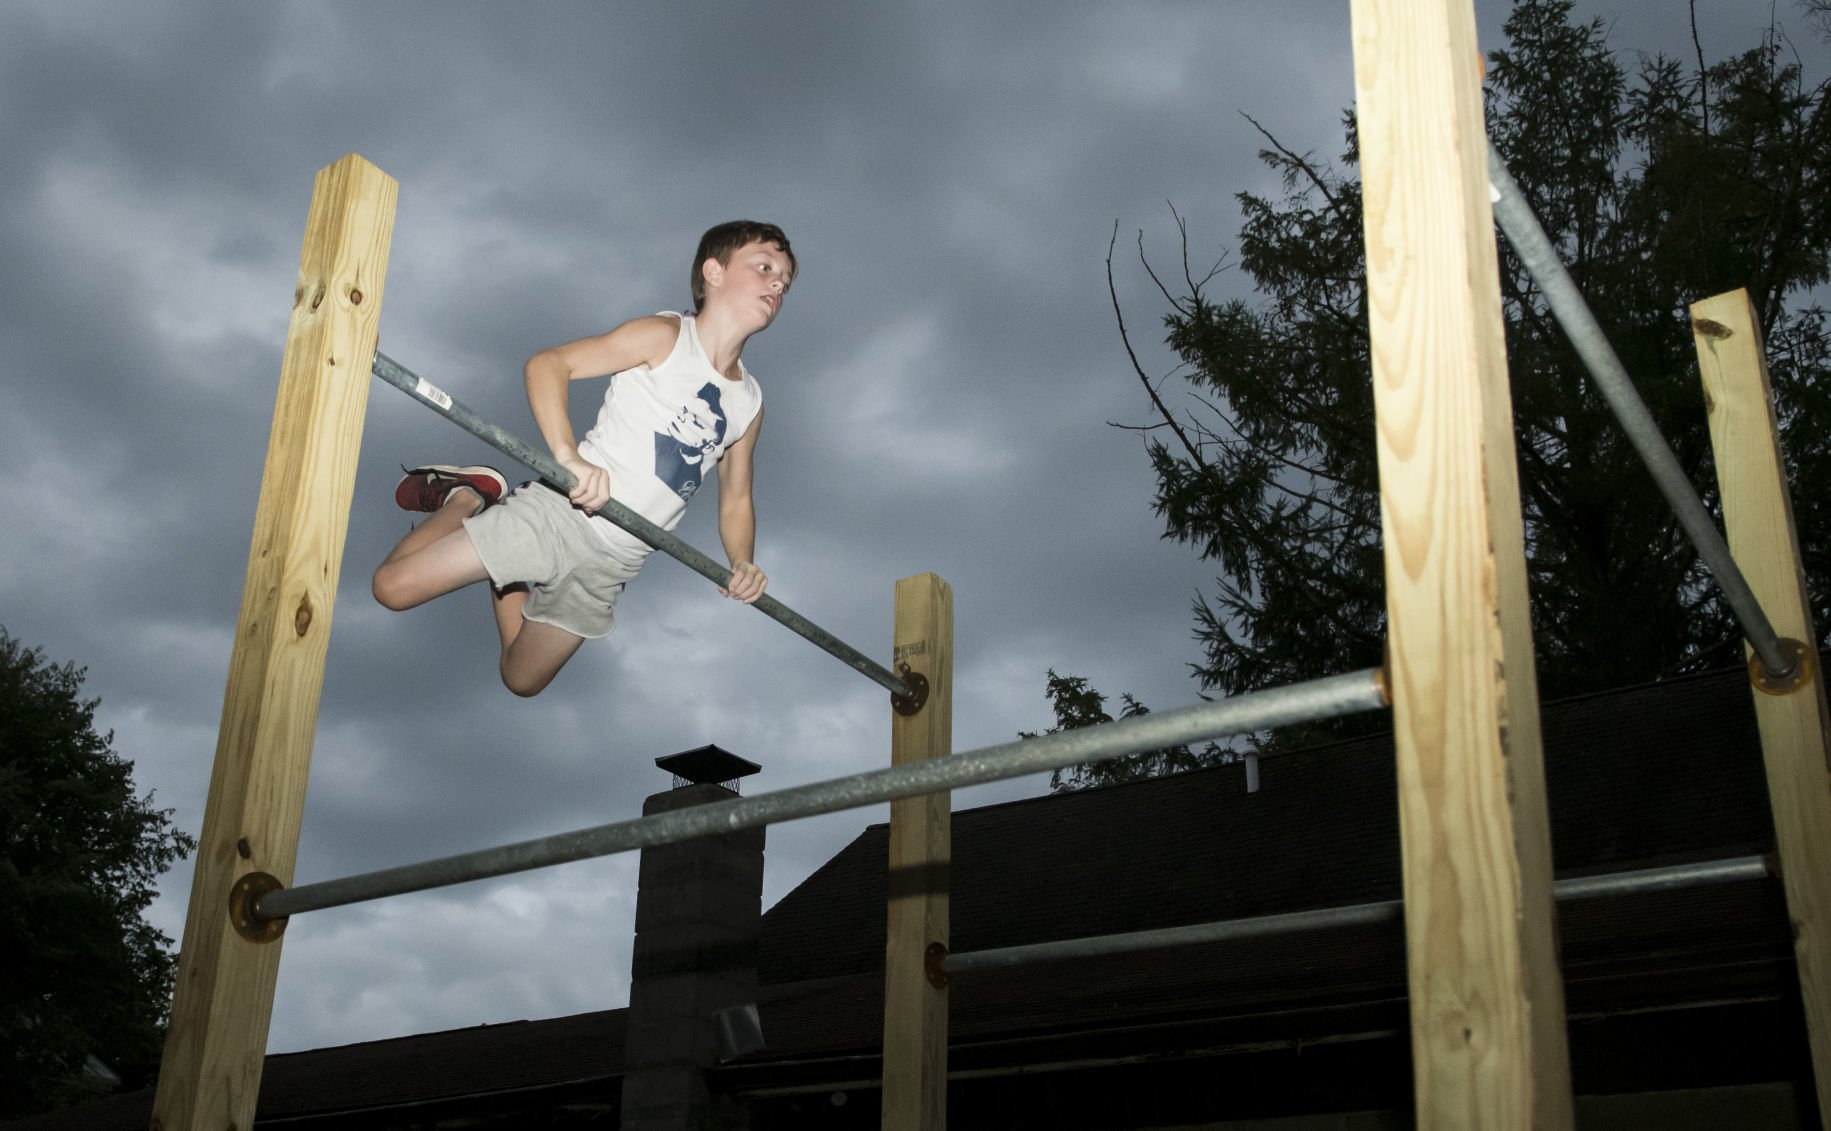 Spa city kid to compete on american ninja warrior junior news